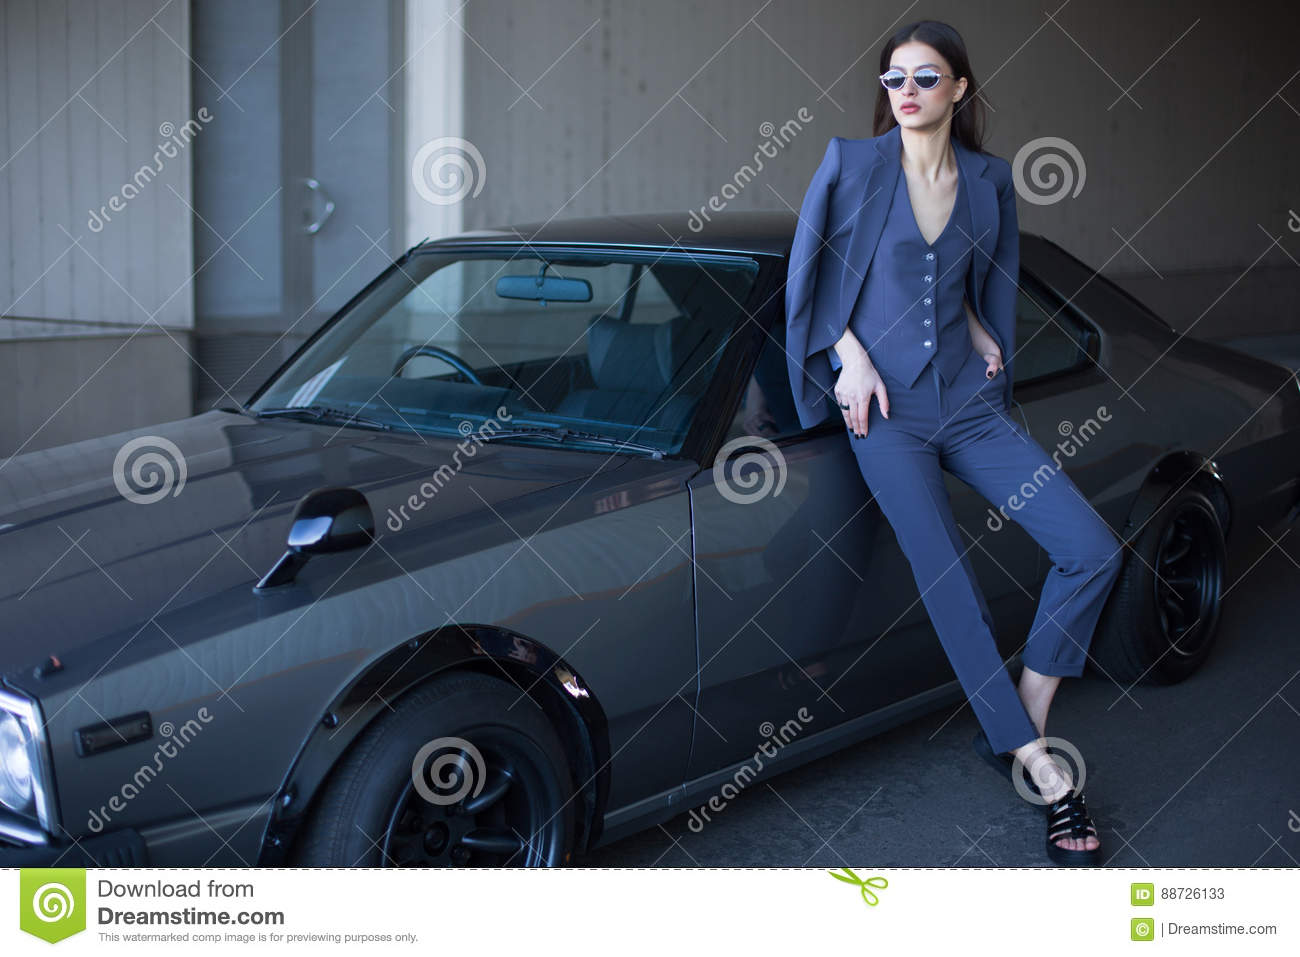 Fashion girl standing next to a retro sport car on the sun. Stylish woman in a gray suit waiting near classic car